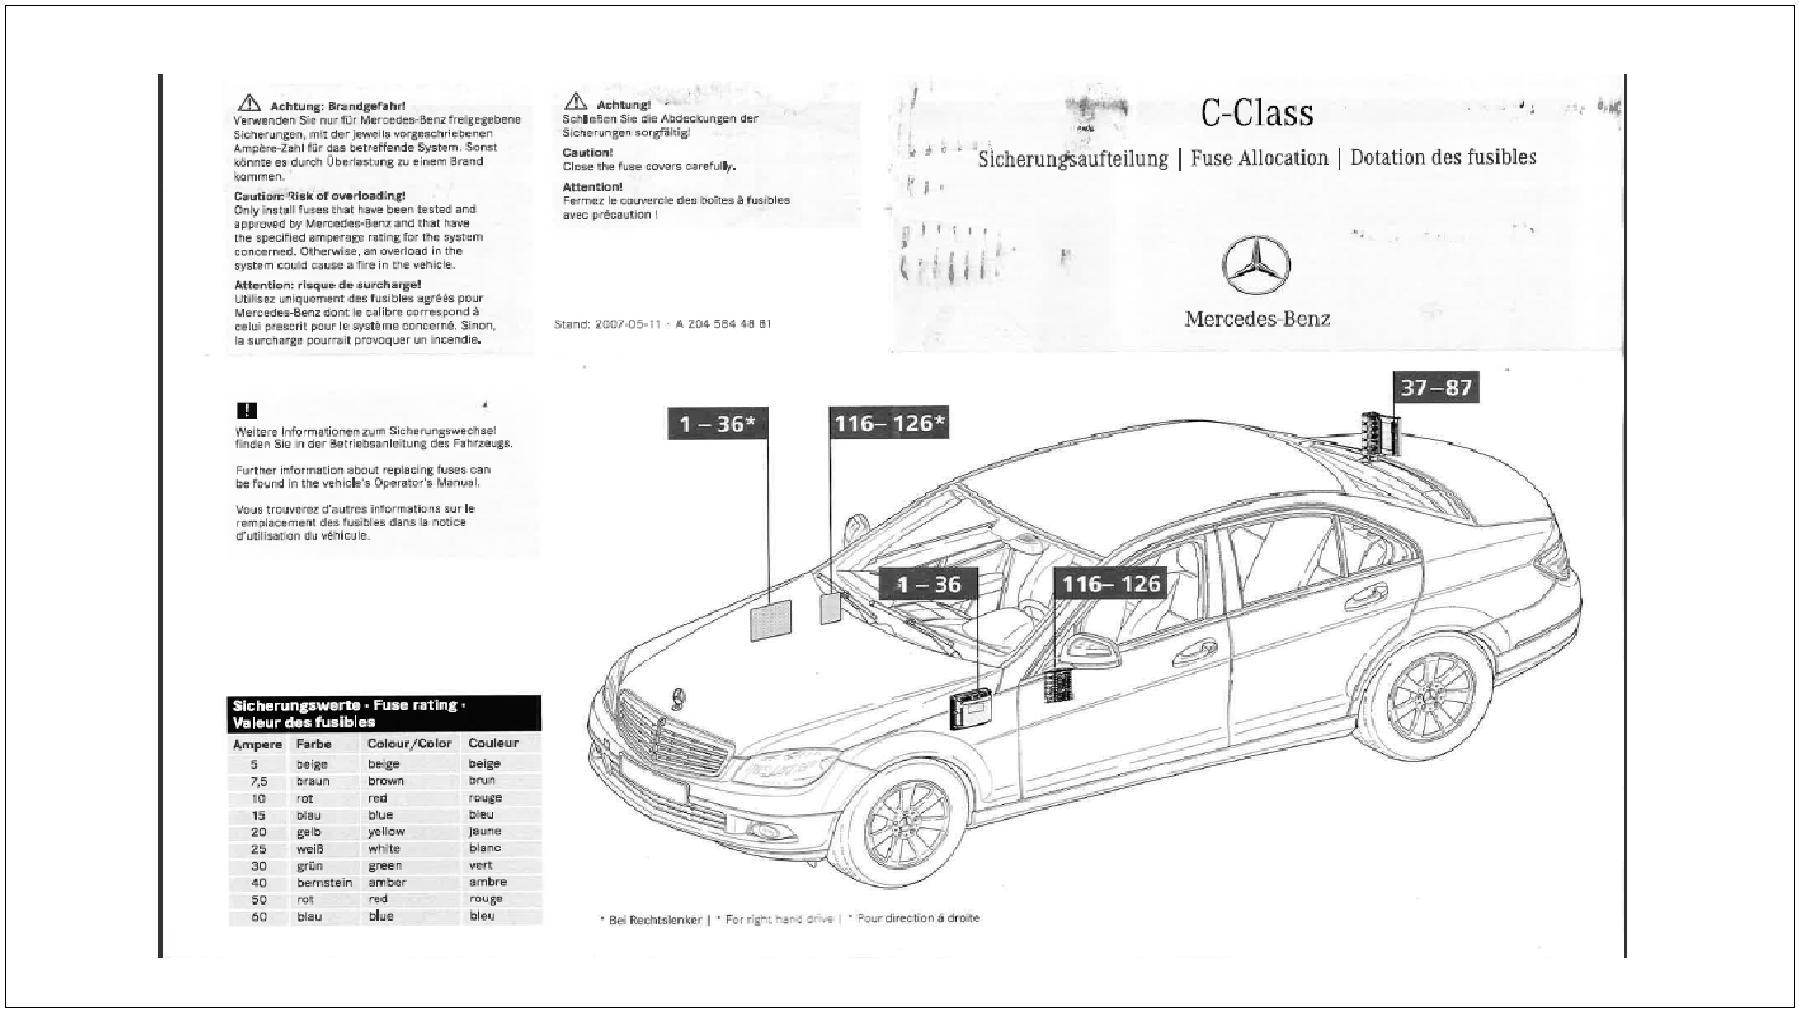 hight resolution of mercedes benz c class w204 fuse diagrams and commonly blown fusesw204 fuse allocation chart page